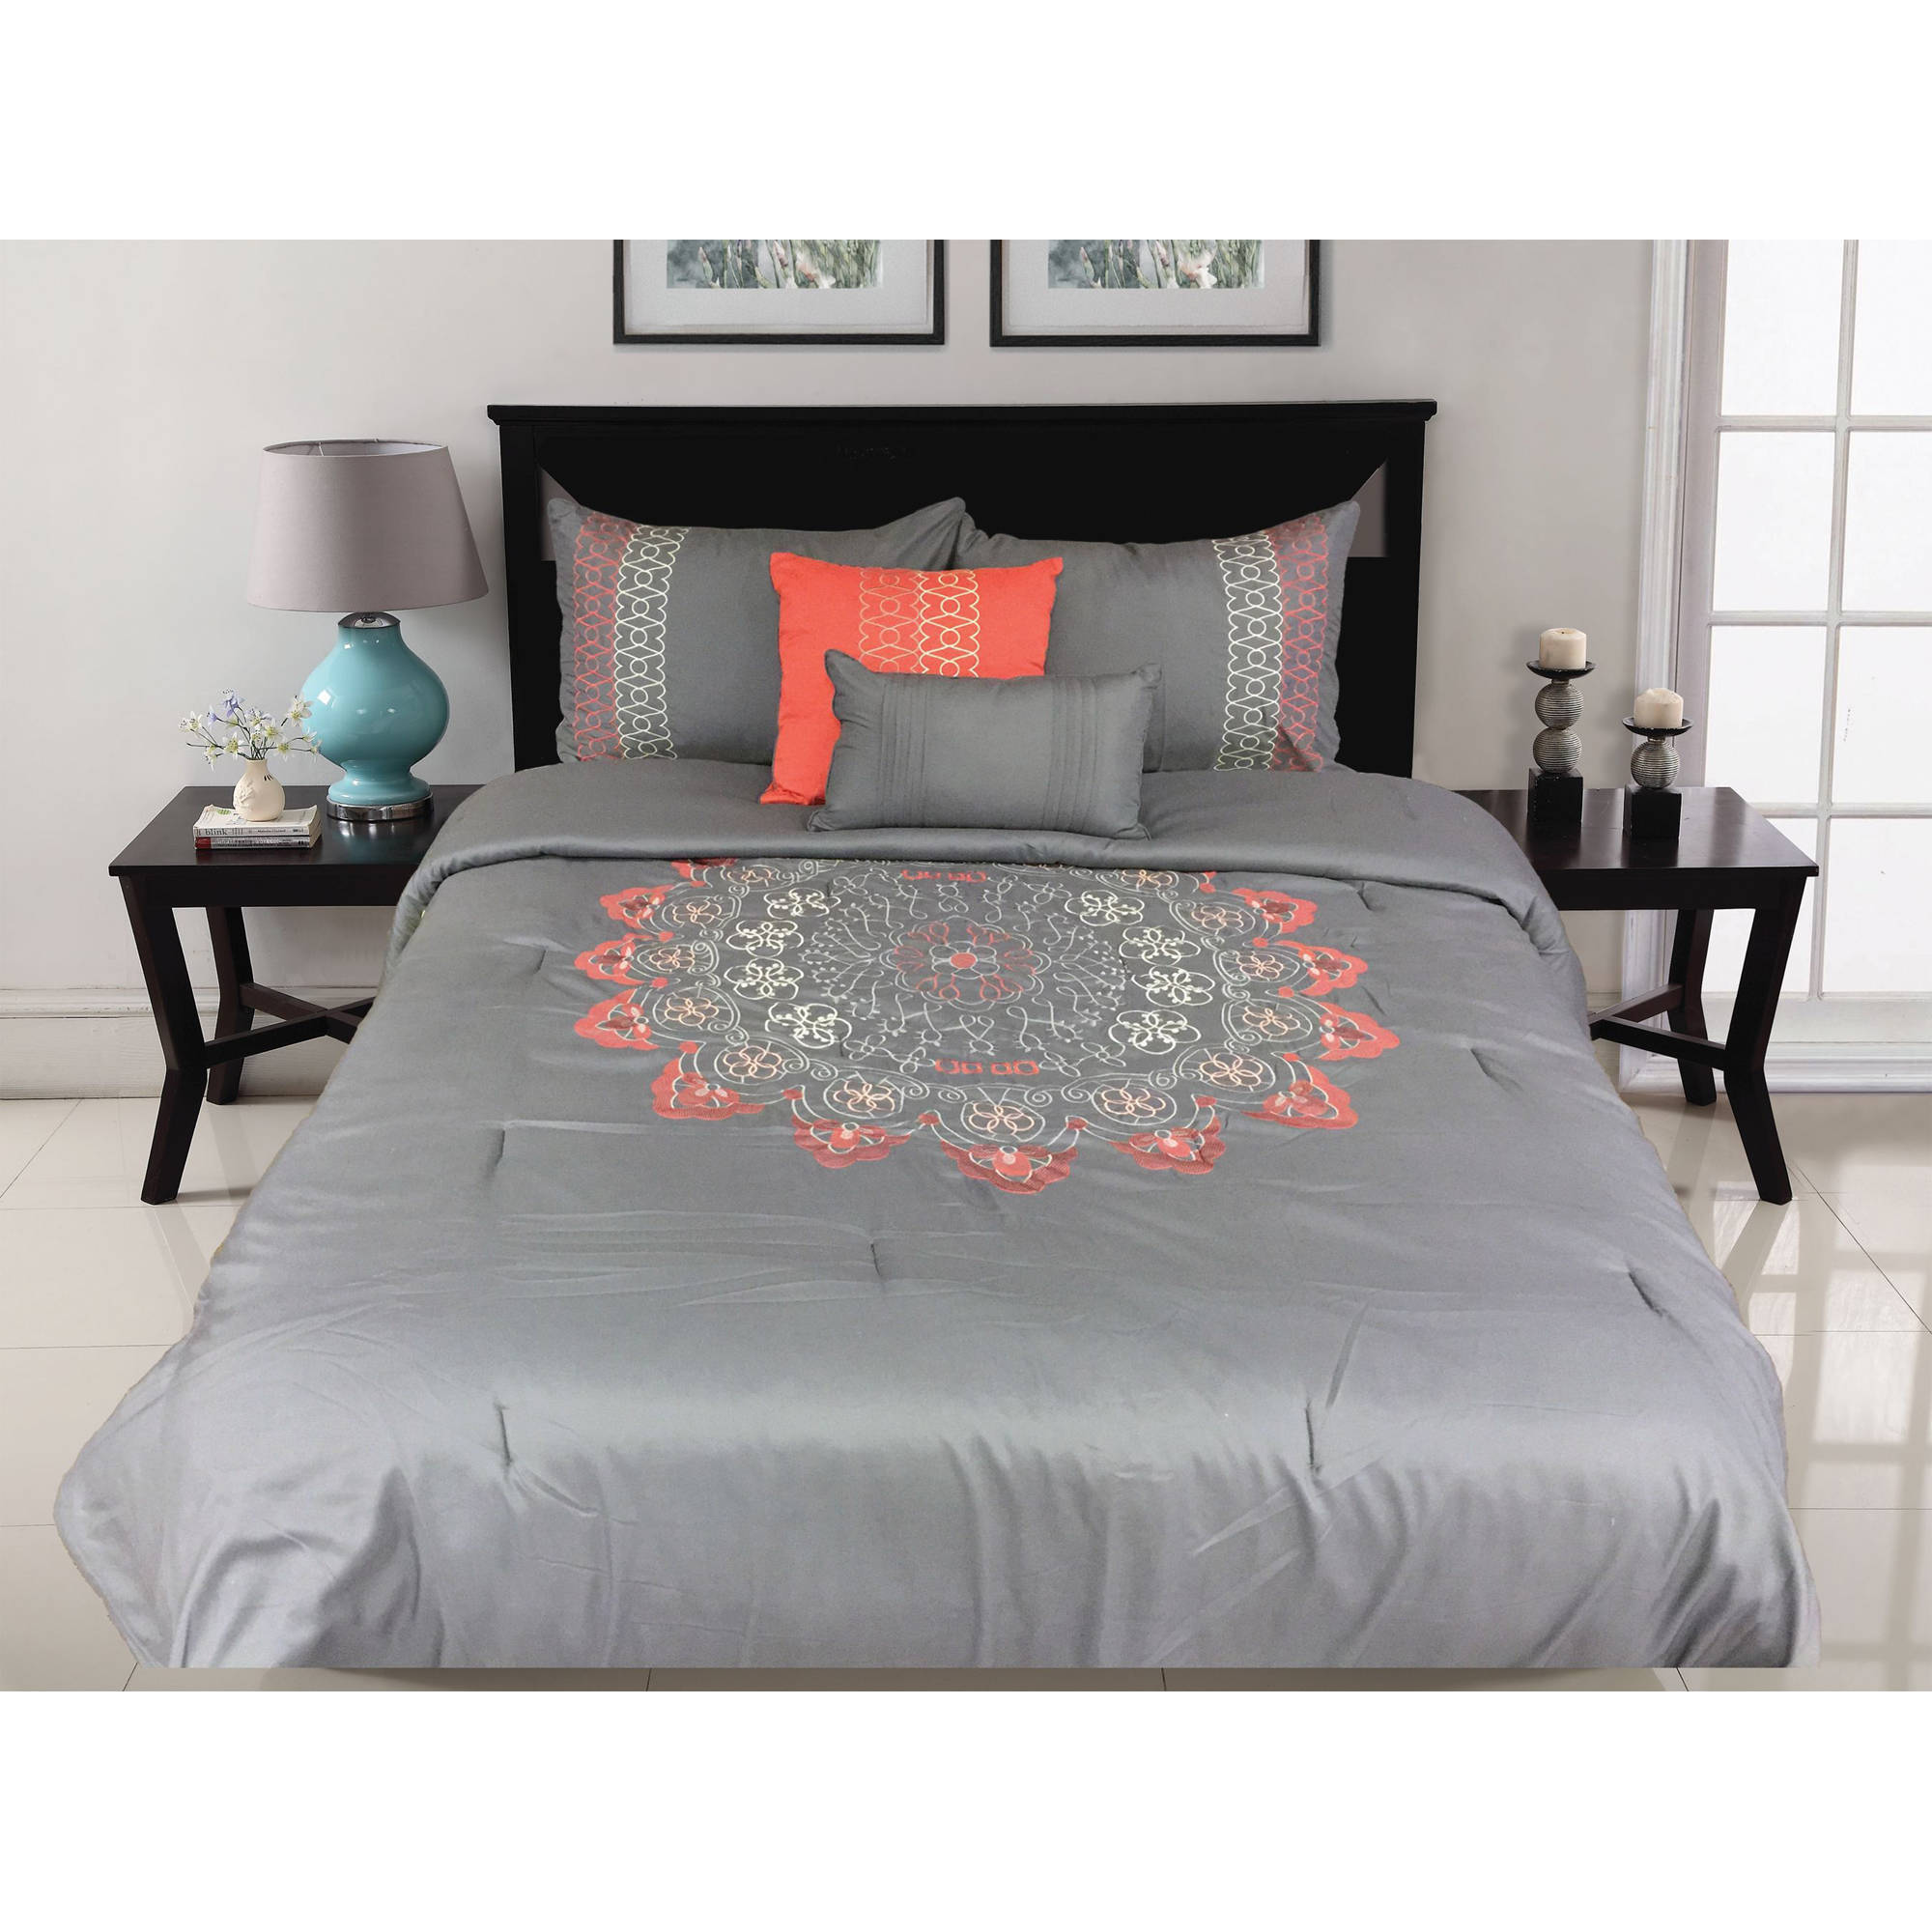 Better Homes and Gardens Catalina 5-Piece Embroidered Bedding Comforter Set, Coral